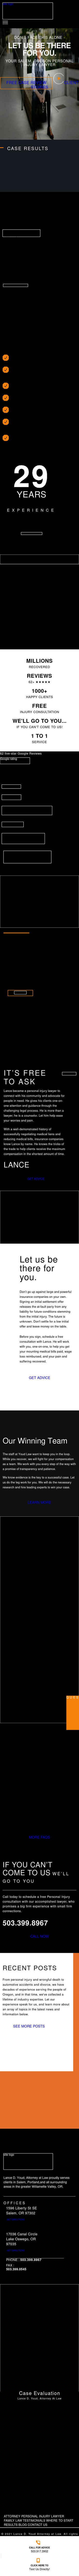 Lance D. Youd, Attorney at Law - Salem OR Lawyers